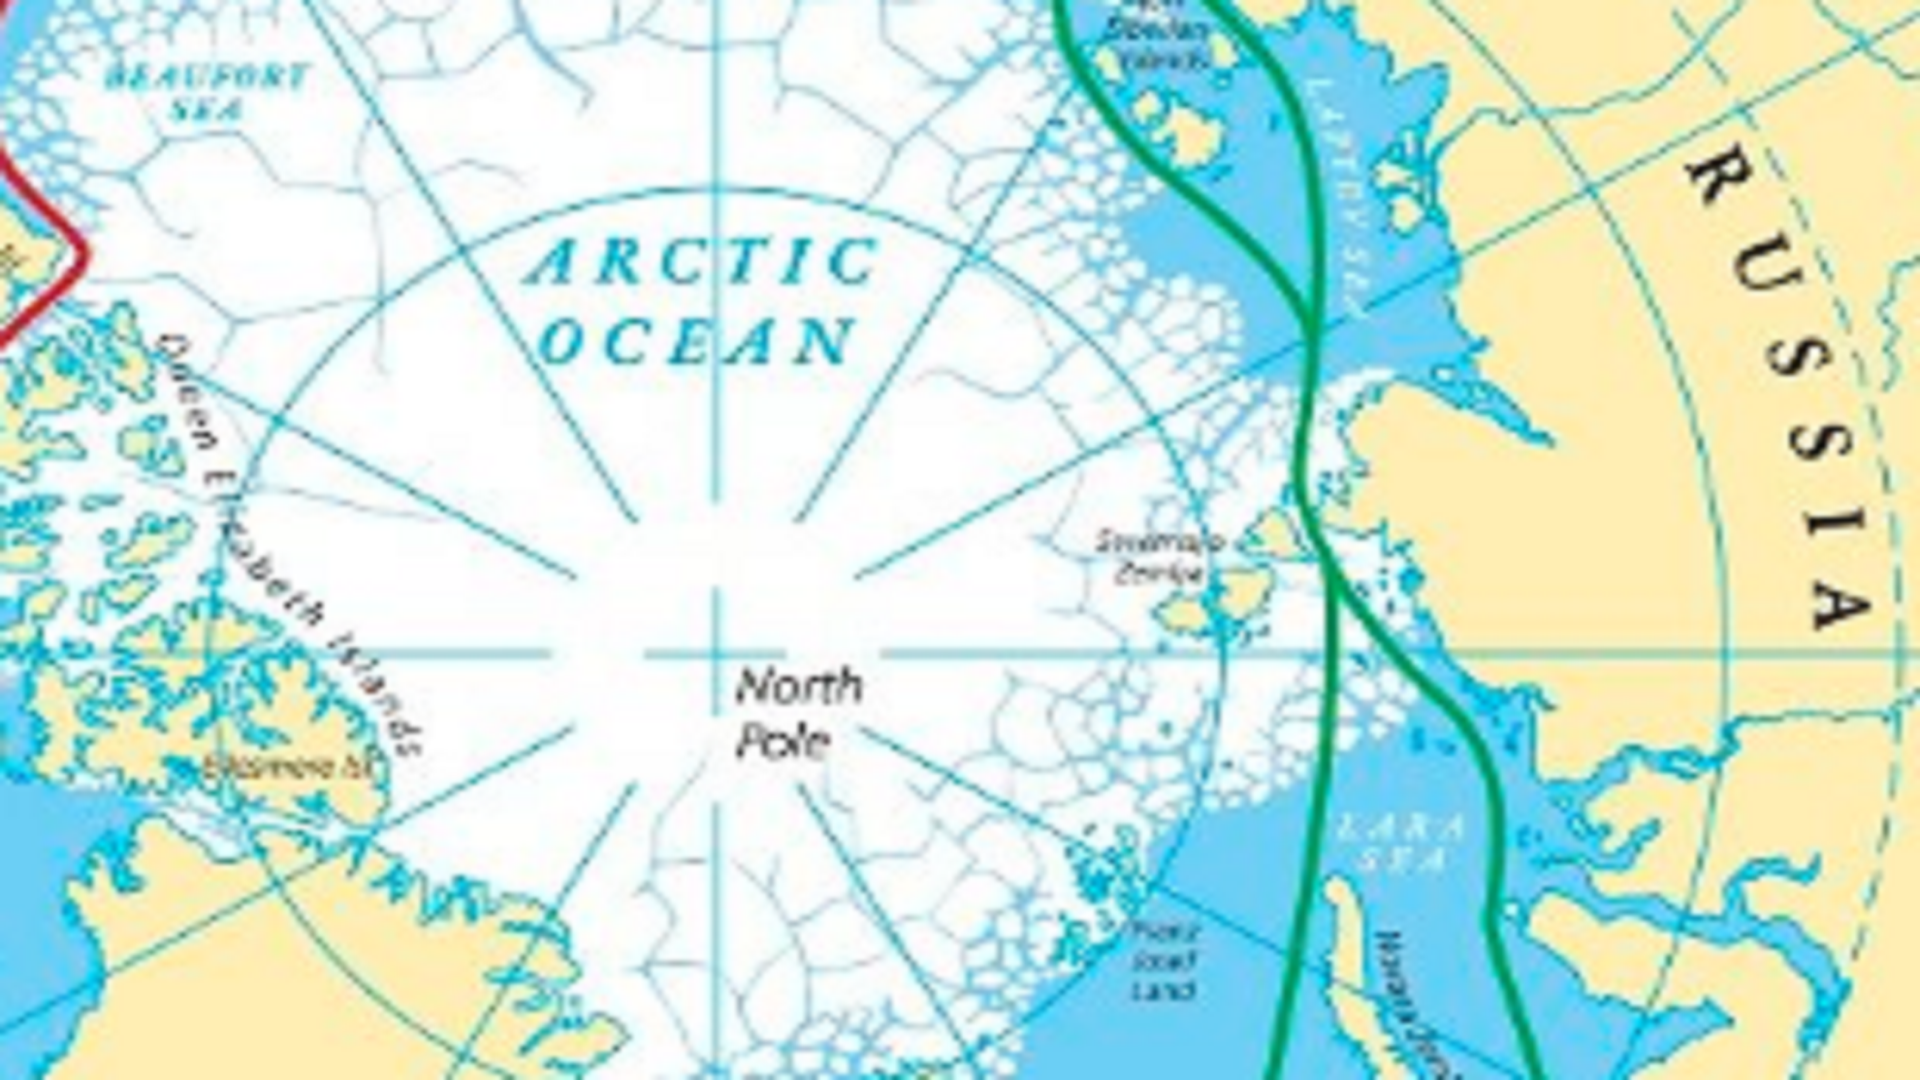 Bering/Pacific-Arctic Council (BPAC): Russian-American Ecological and Social-Economic Cooperation at the Junctions of the North Pacific and Arctic Oceans and the Eurasian and North American Continents